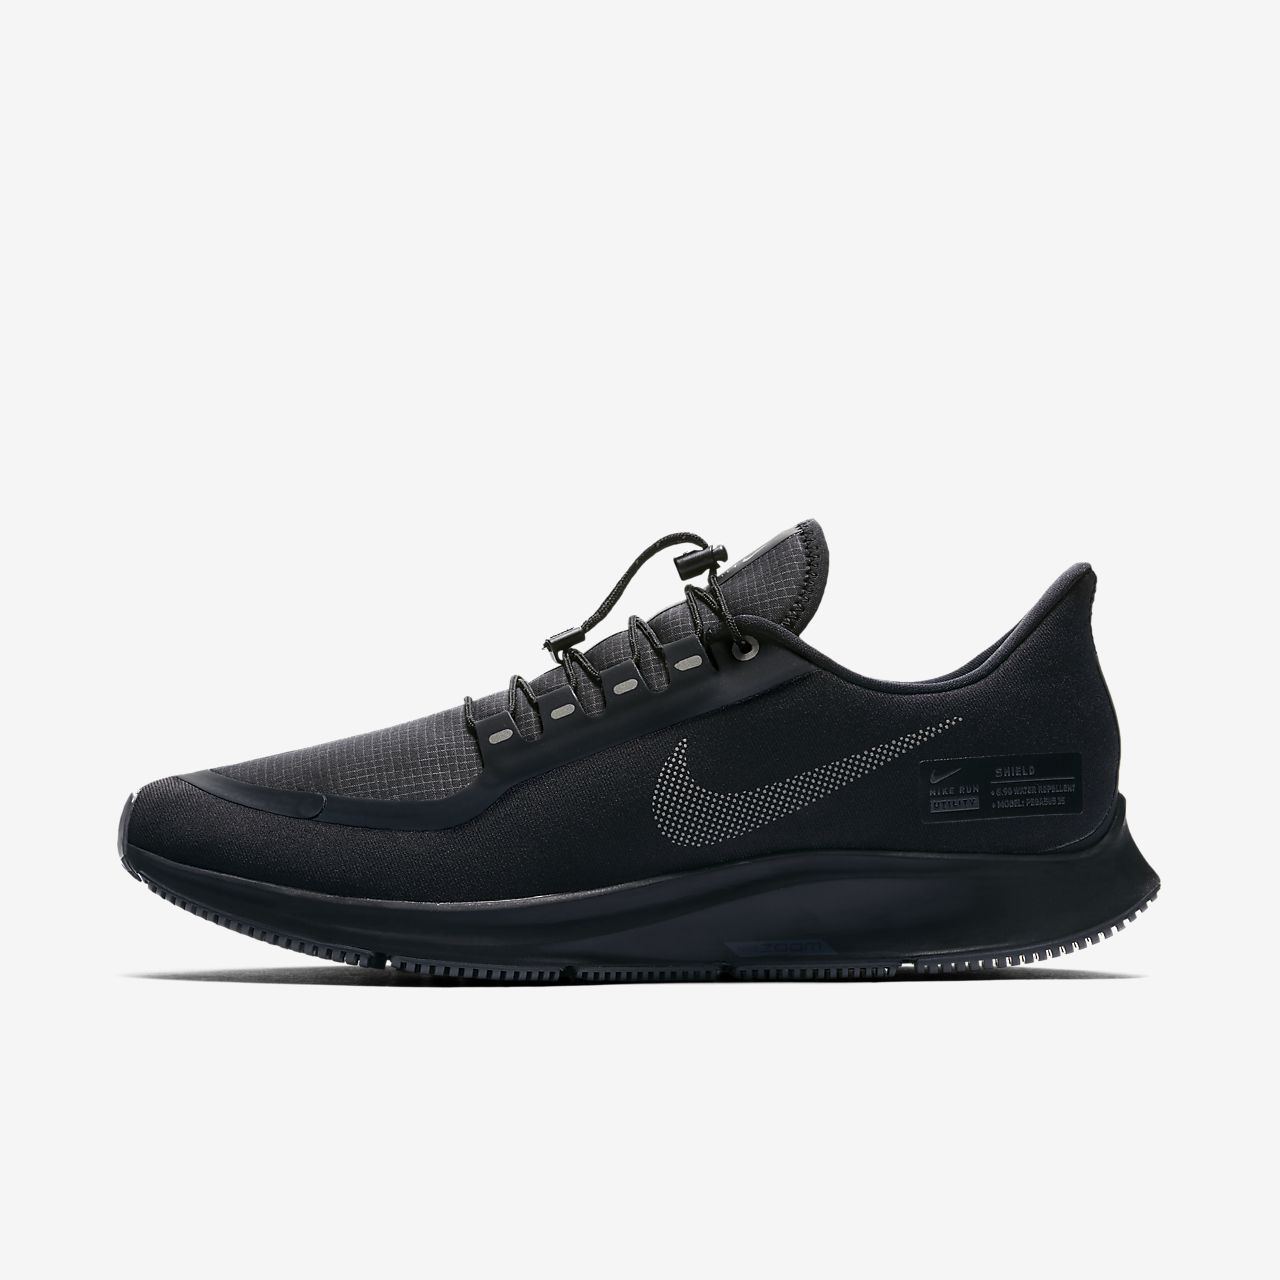 3b0574e99952 ... running shoes in black white f6b69 af56e  promo code for nike air zoom  pegasus 35 shield water repellent 0b801 e3943